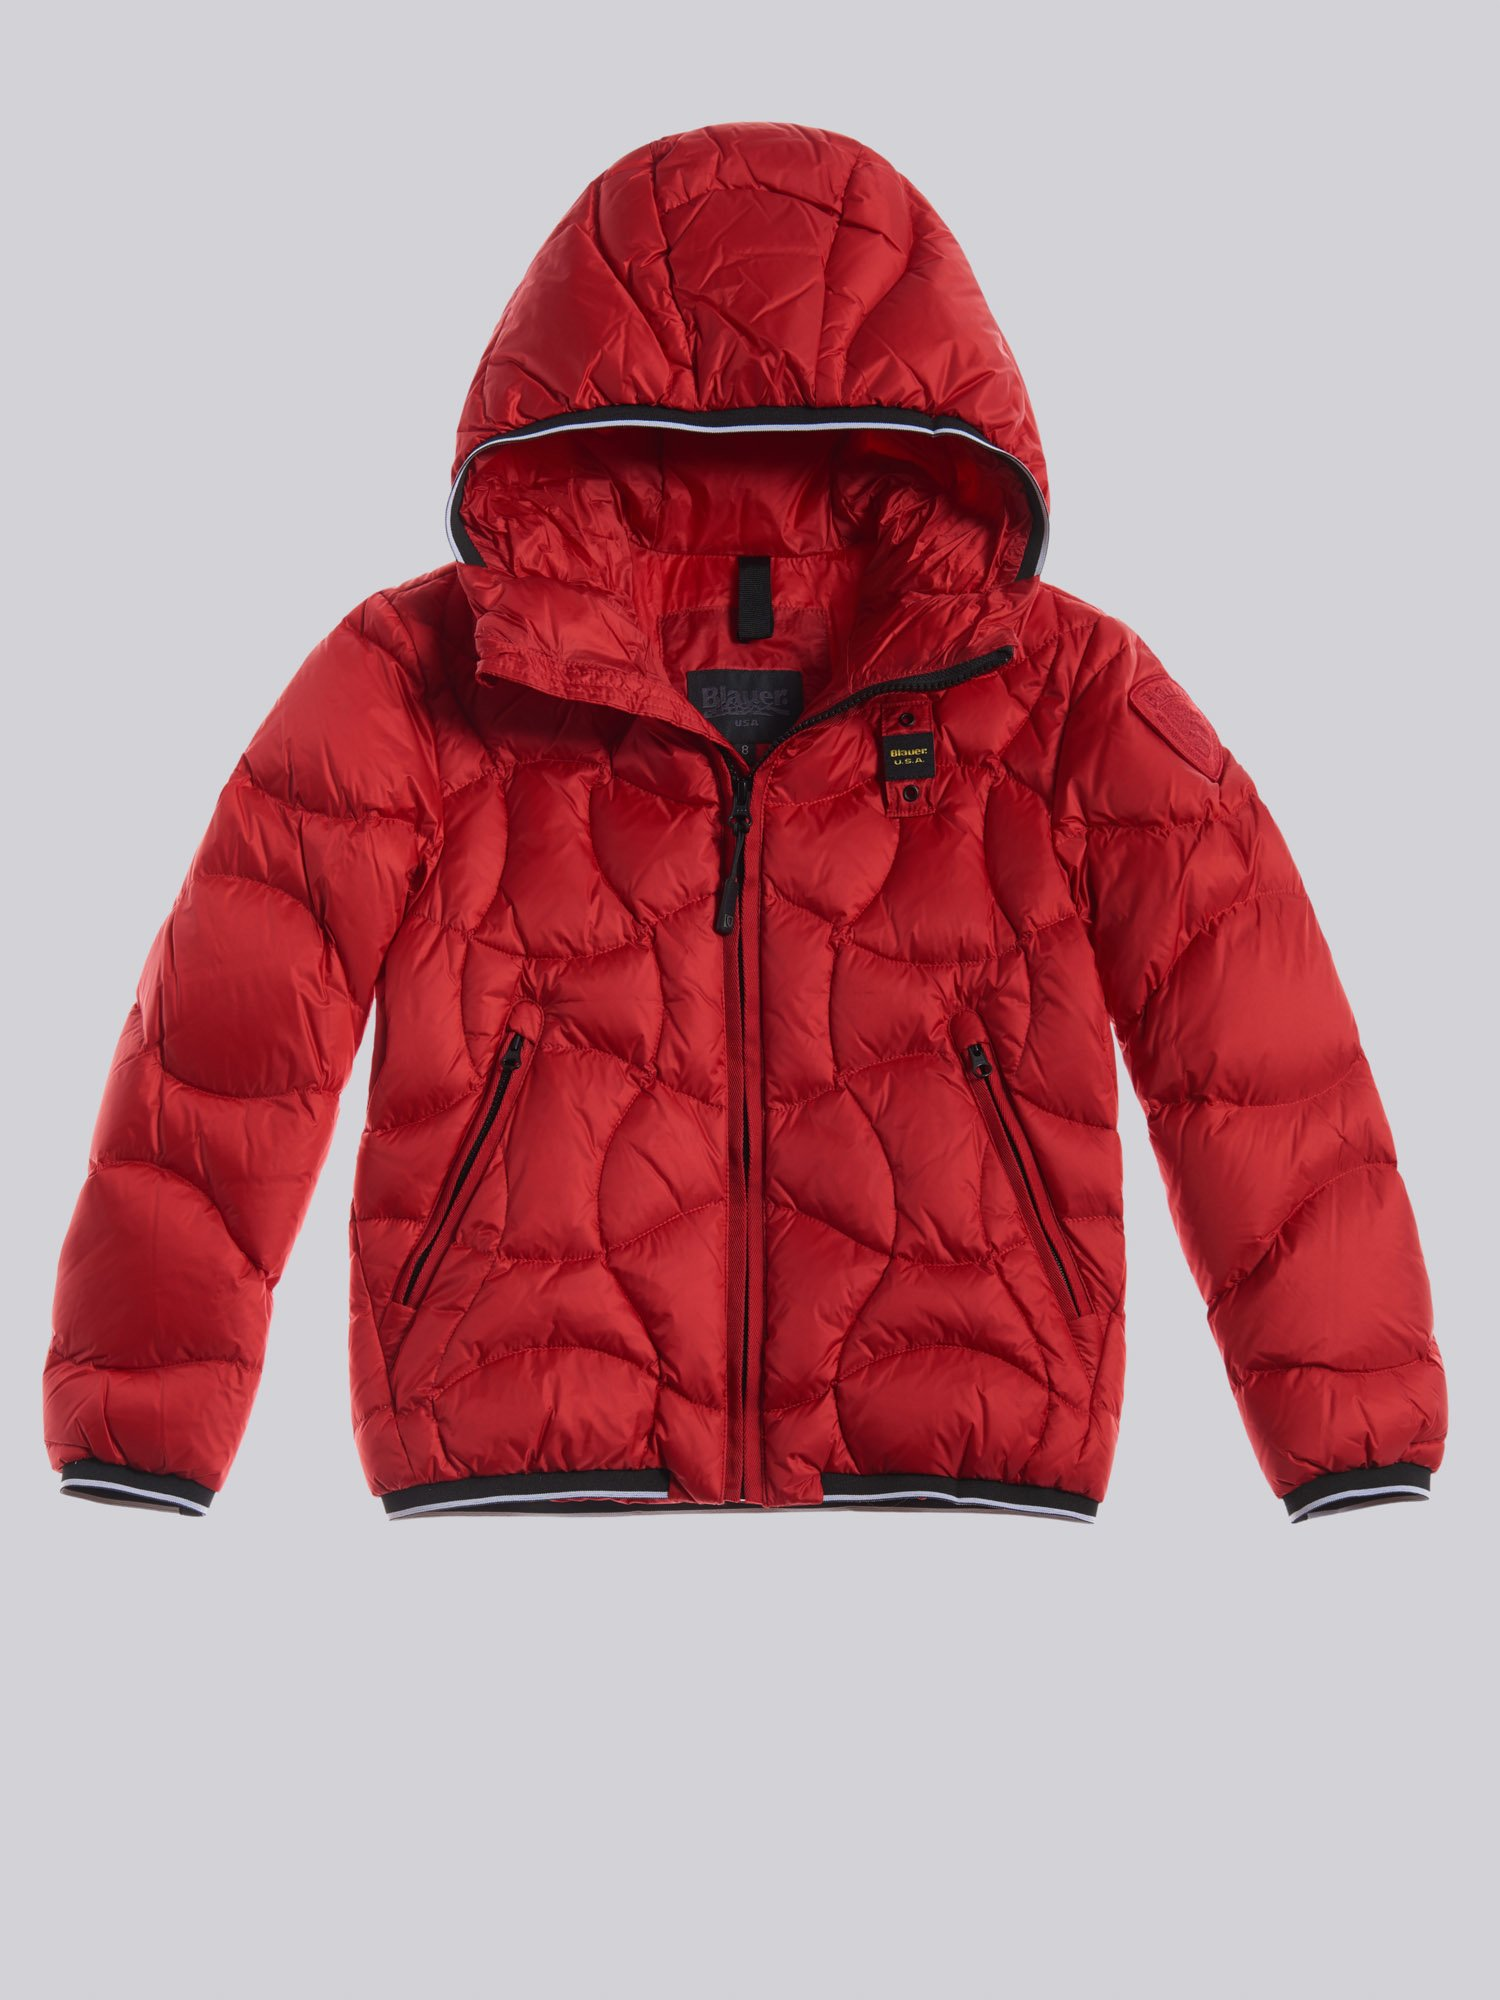 Blauer - DALE CROSSED-WAVE DOWN JACKET - Red Bloode - Blauer